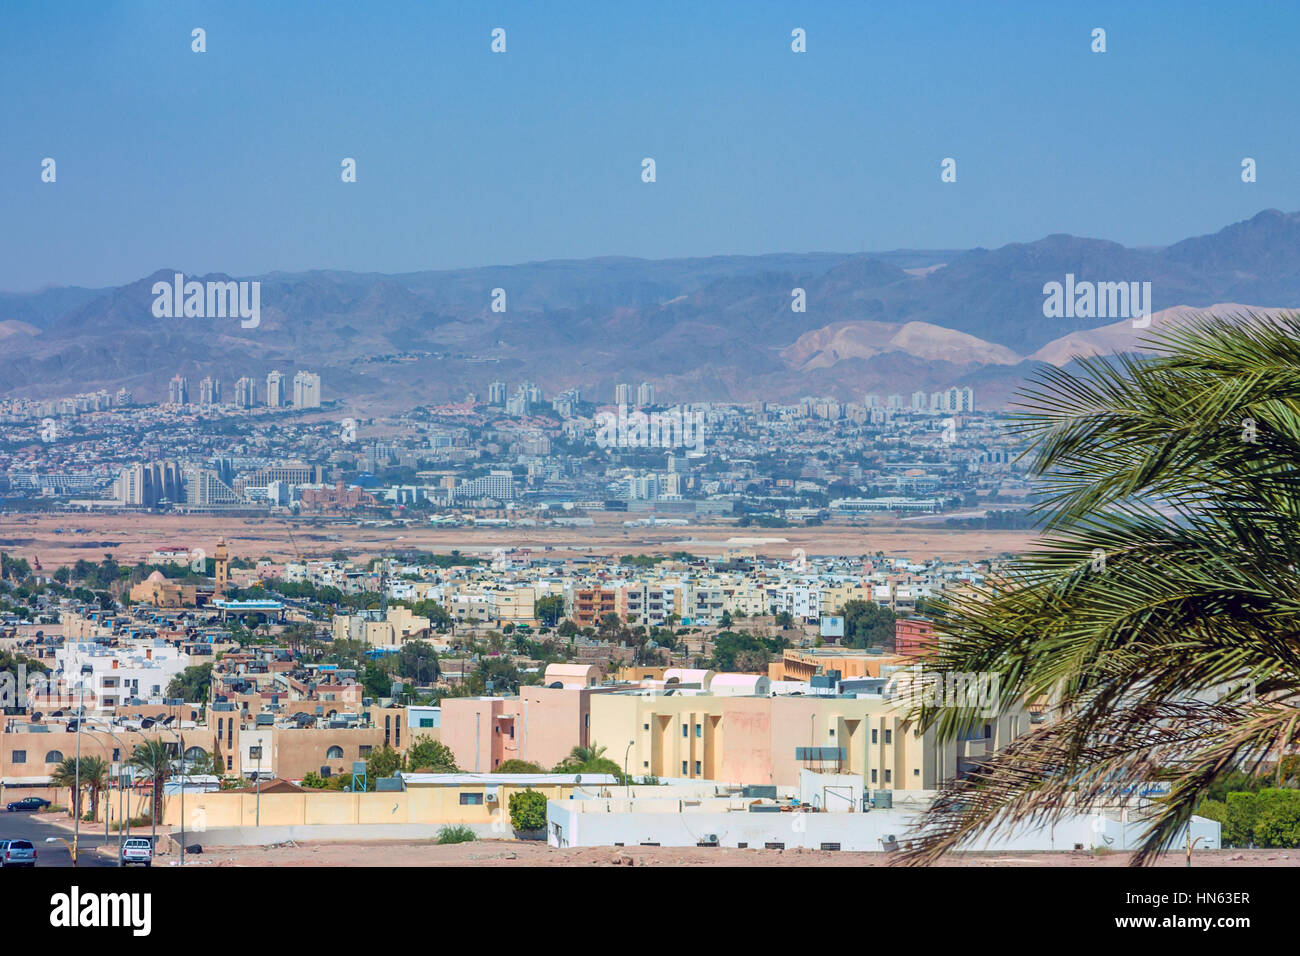 View from Jordan city Aqaba to neighbouring Eilat city in Israel - Stock Image